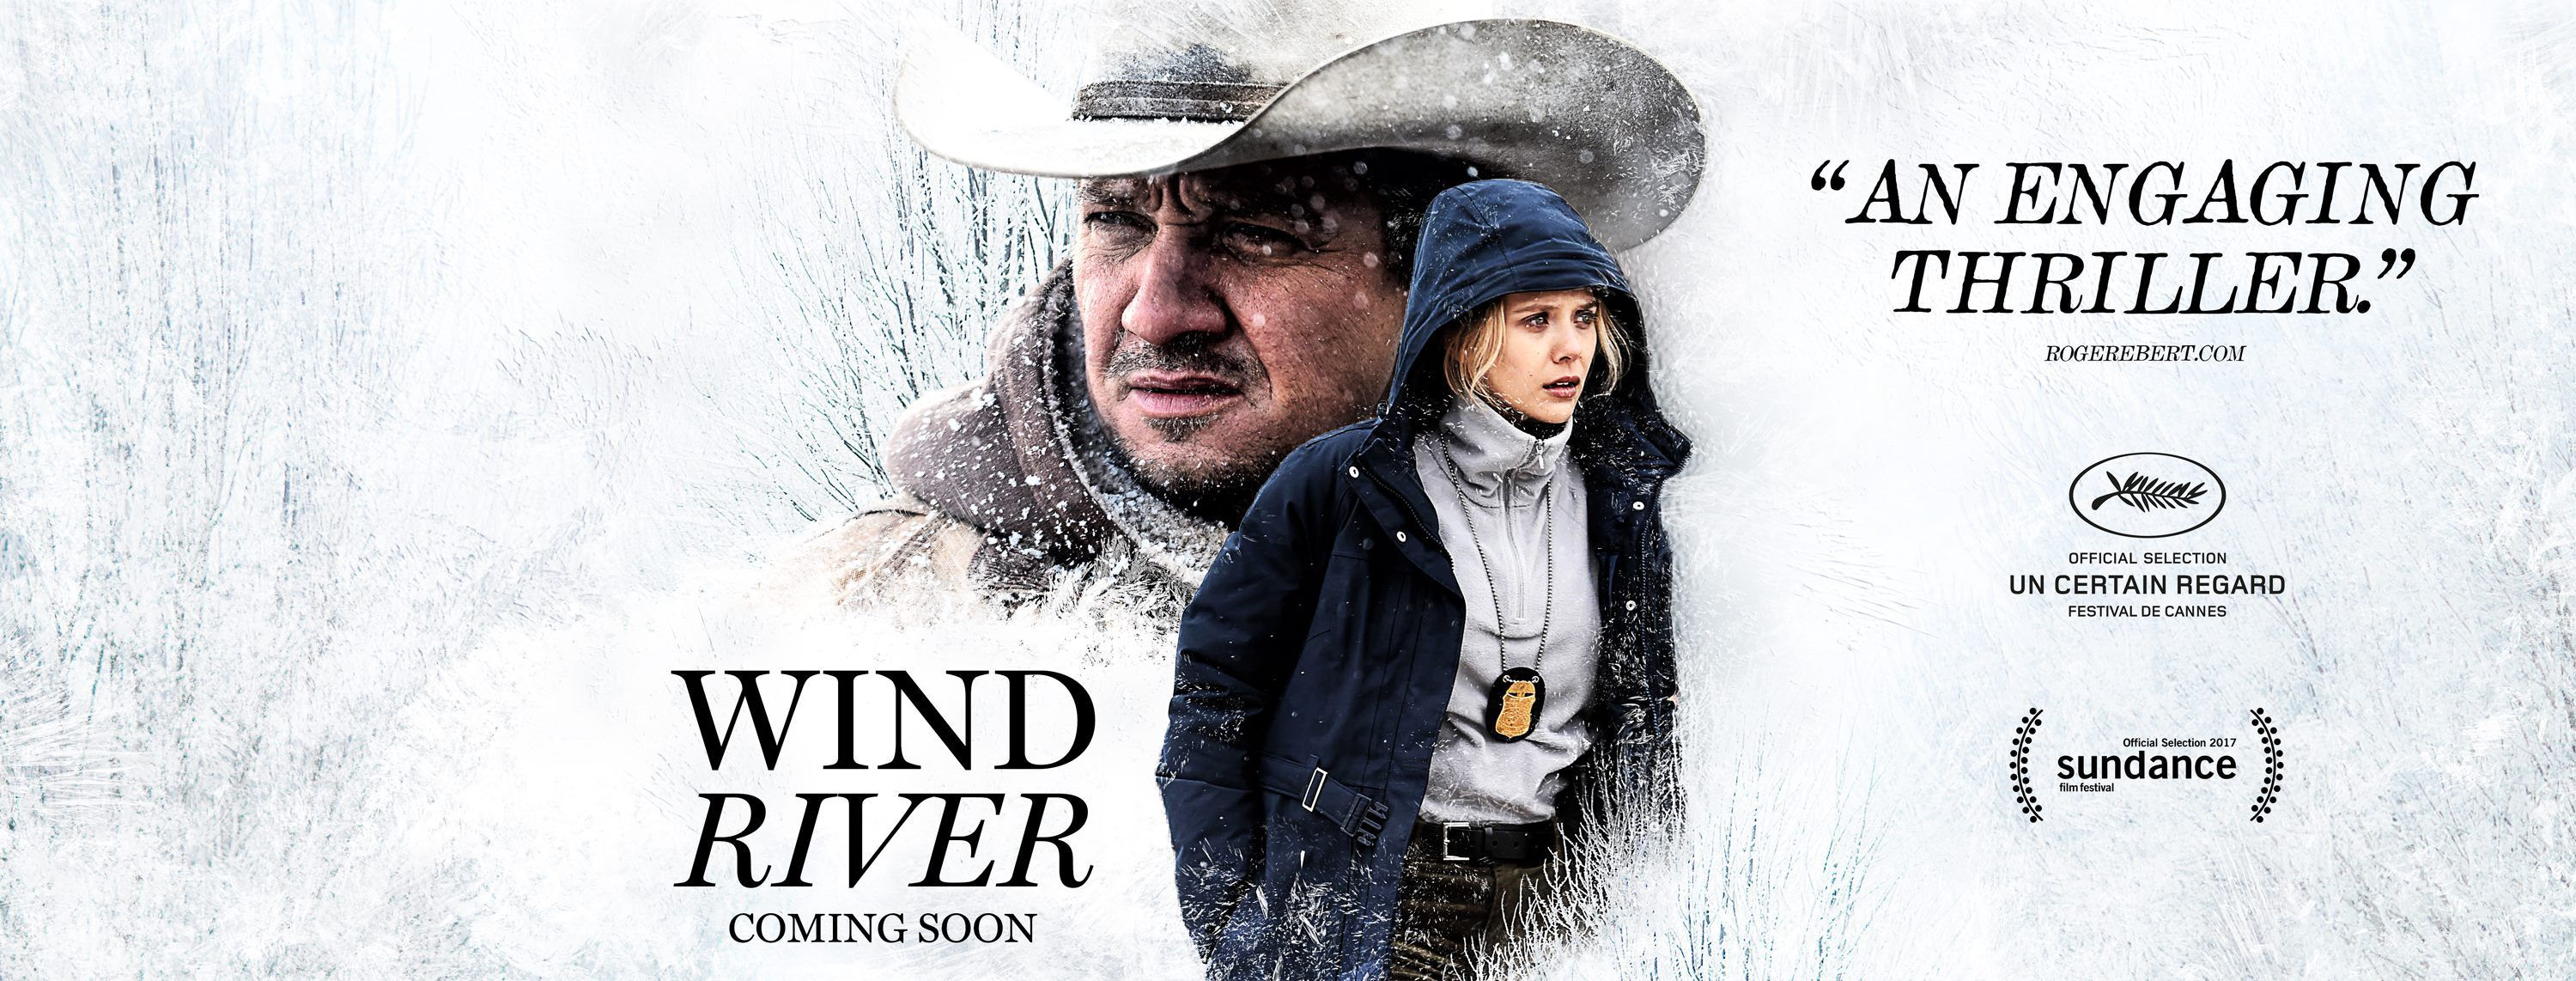 Watch()Free!]! Wind River (2017) New Full [HD!]! Digital Movie ...